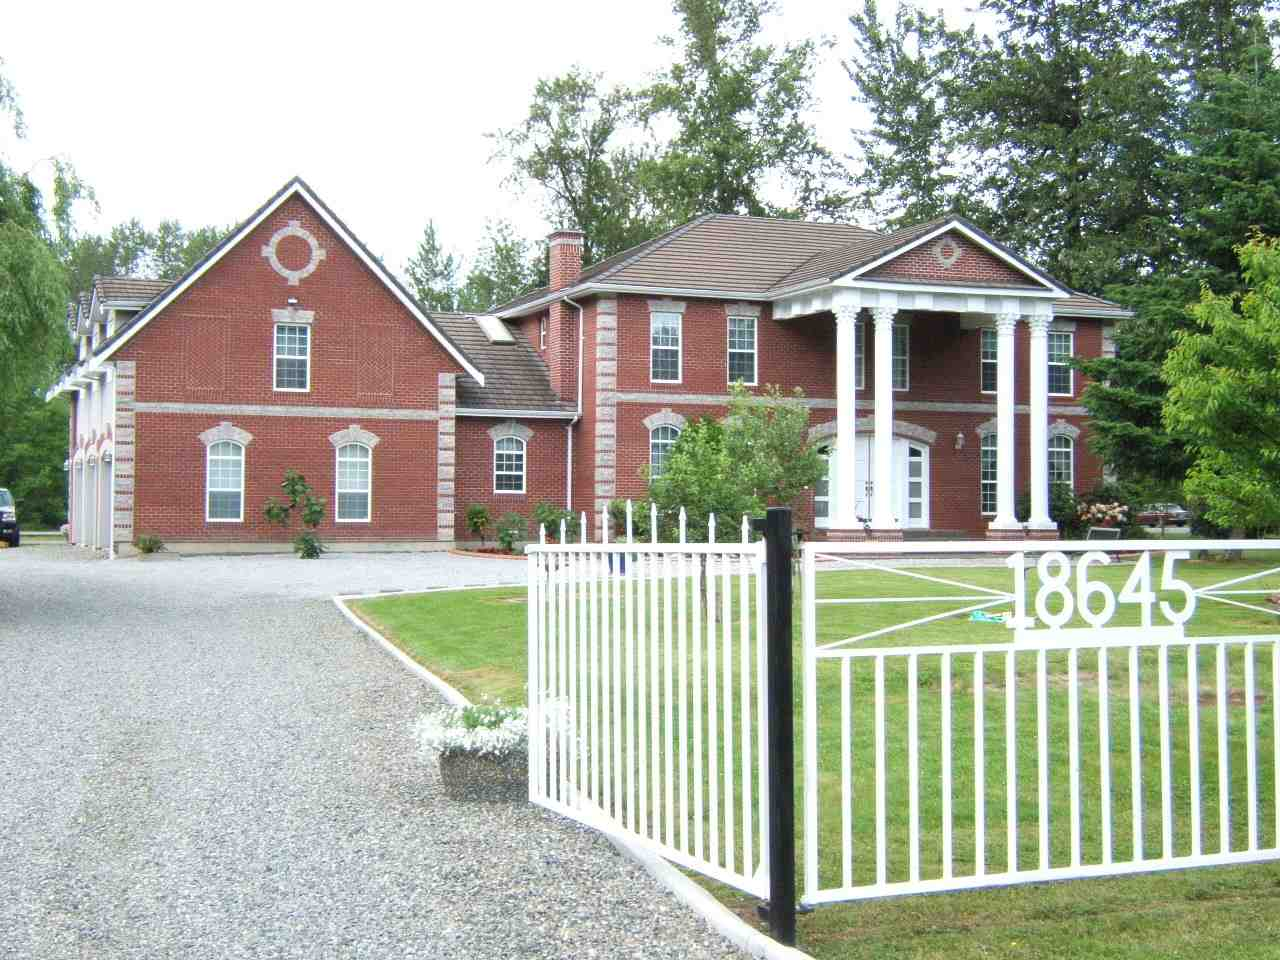 West Clayton NCP Area. Attention developers and investors. SPECTACULAR. High privacy hedge & gated drive to MOUNTAIN VIEW 2.5 acres & STUNNING GEORGIAN COLONIAL built by European craftsman. 40x26 heated garage w/10' doors. 59x16 building w/workshop & 2 stall barn. RV storage 24x20 w/11' ceiling. Tile roof, brick exterior, 2x6 walls, silent floors, hot water heat, 10' ceilings, HRV system, gazebo & patios. GOURMET Maple kitchen w/SUB ZERO, walk-in pantry & wok kitchen - open to family rm. Den or 5th bdrm. Over garage - huge games rm plumbed for wet bar (excellent nanny suite). Master w/balcony & f/p to deluxe ensuite. Fantastic investment. Can be purchased with neighbouring 2.5 acres - 18619 74 Ave MLS# R2168129 for a total of 5 acres.